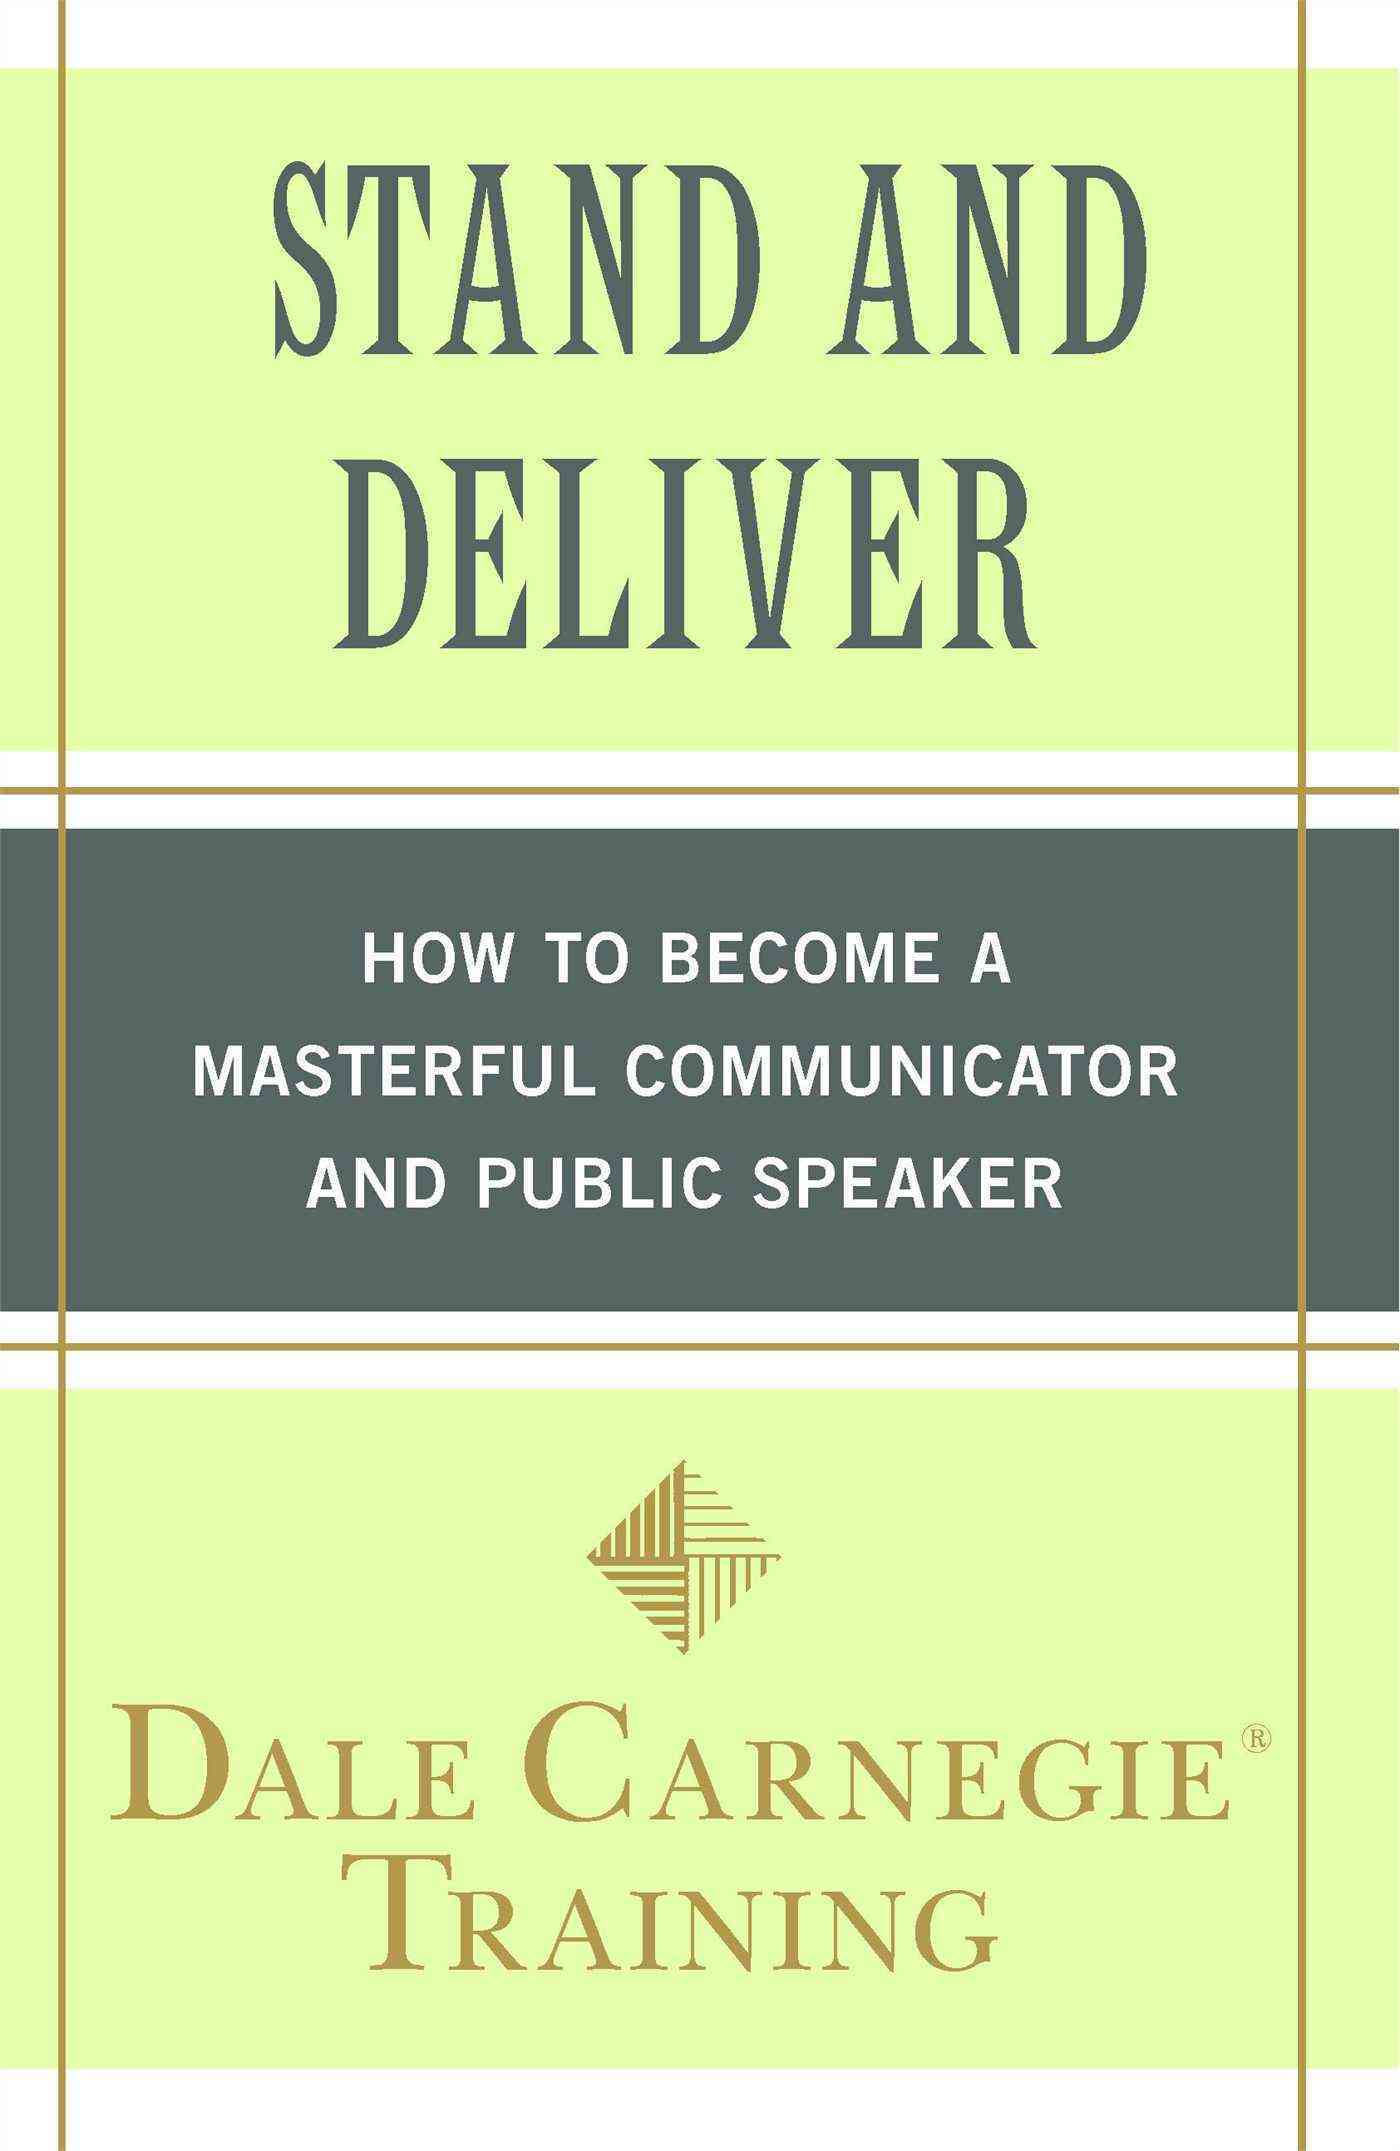 Stand and Deliver: How to Become a Masterful Communicator and Public Speaker (Paperback)